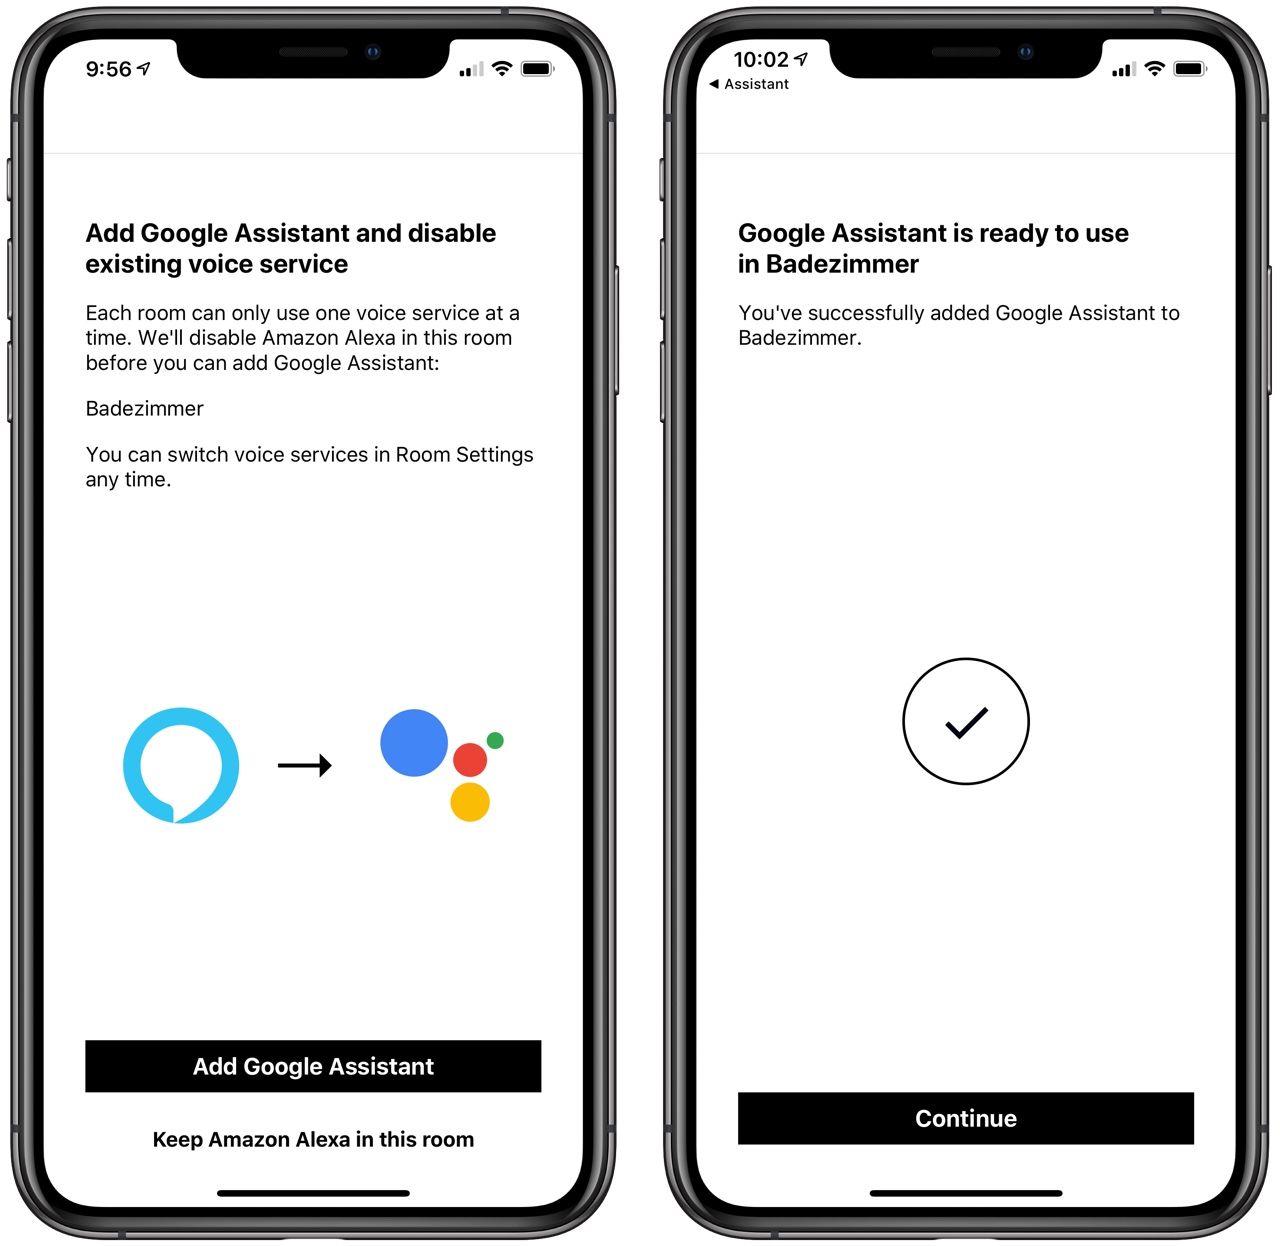 Sonos Für Badezimmer Vowe Dot Net 12 Ways The Google Assistant Will Enhance Your